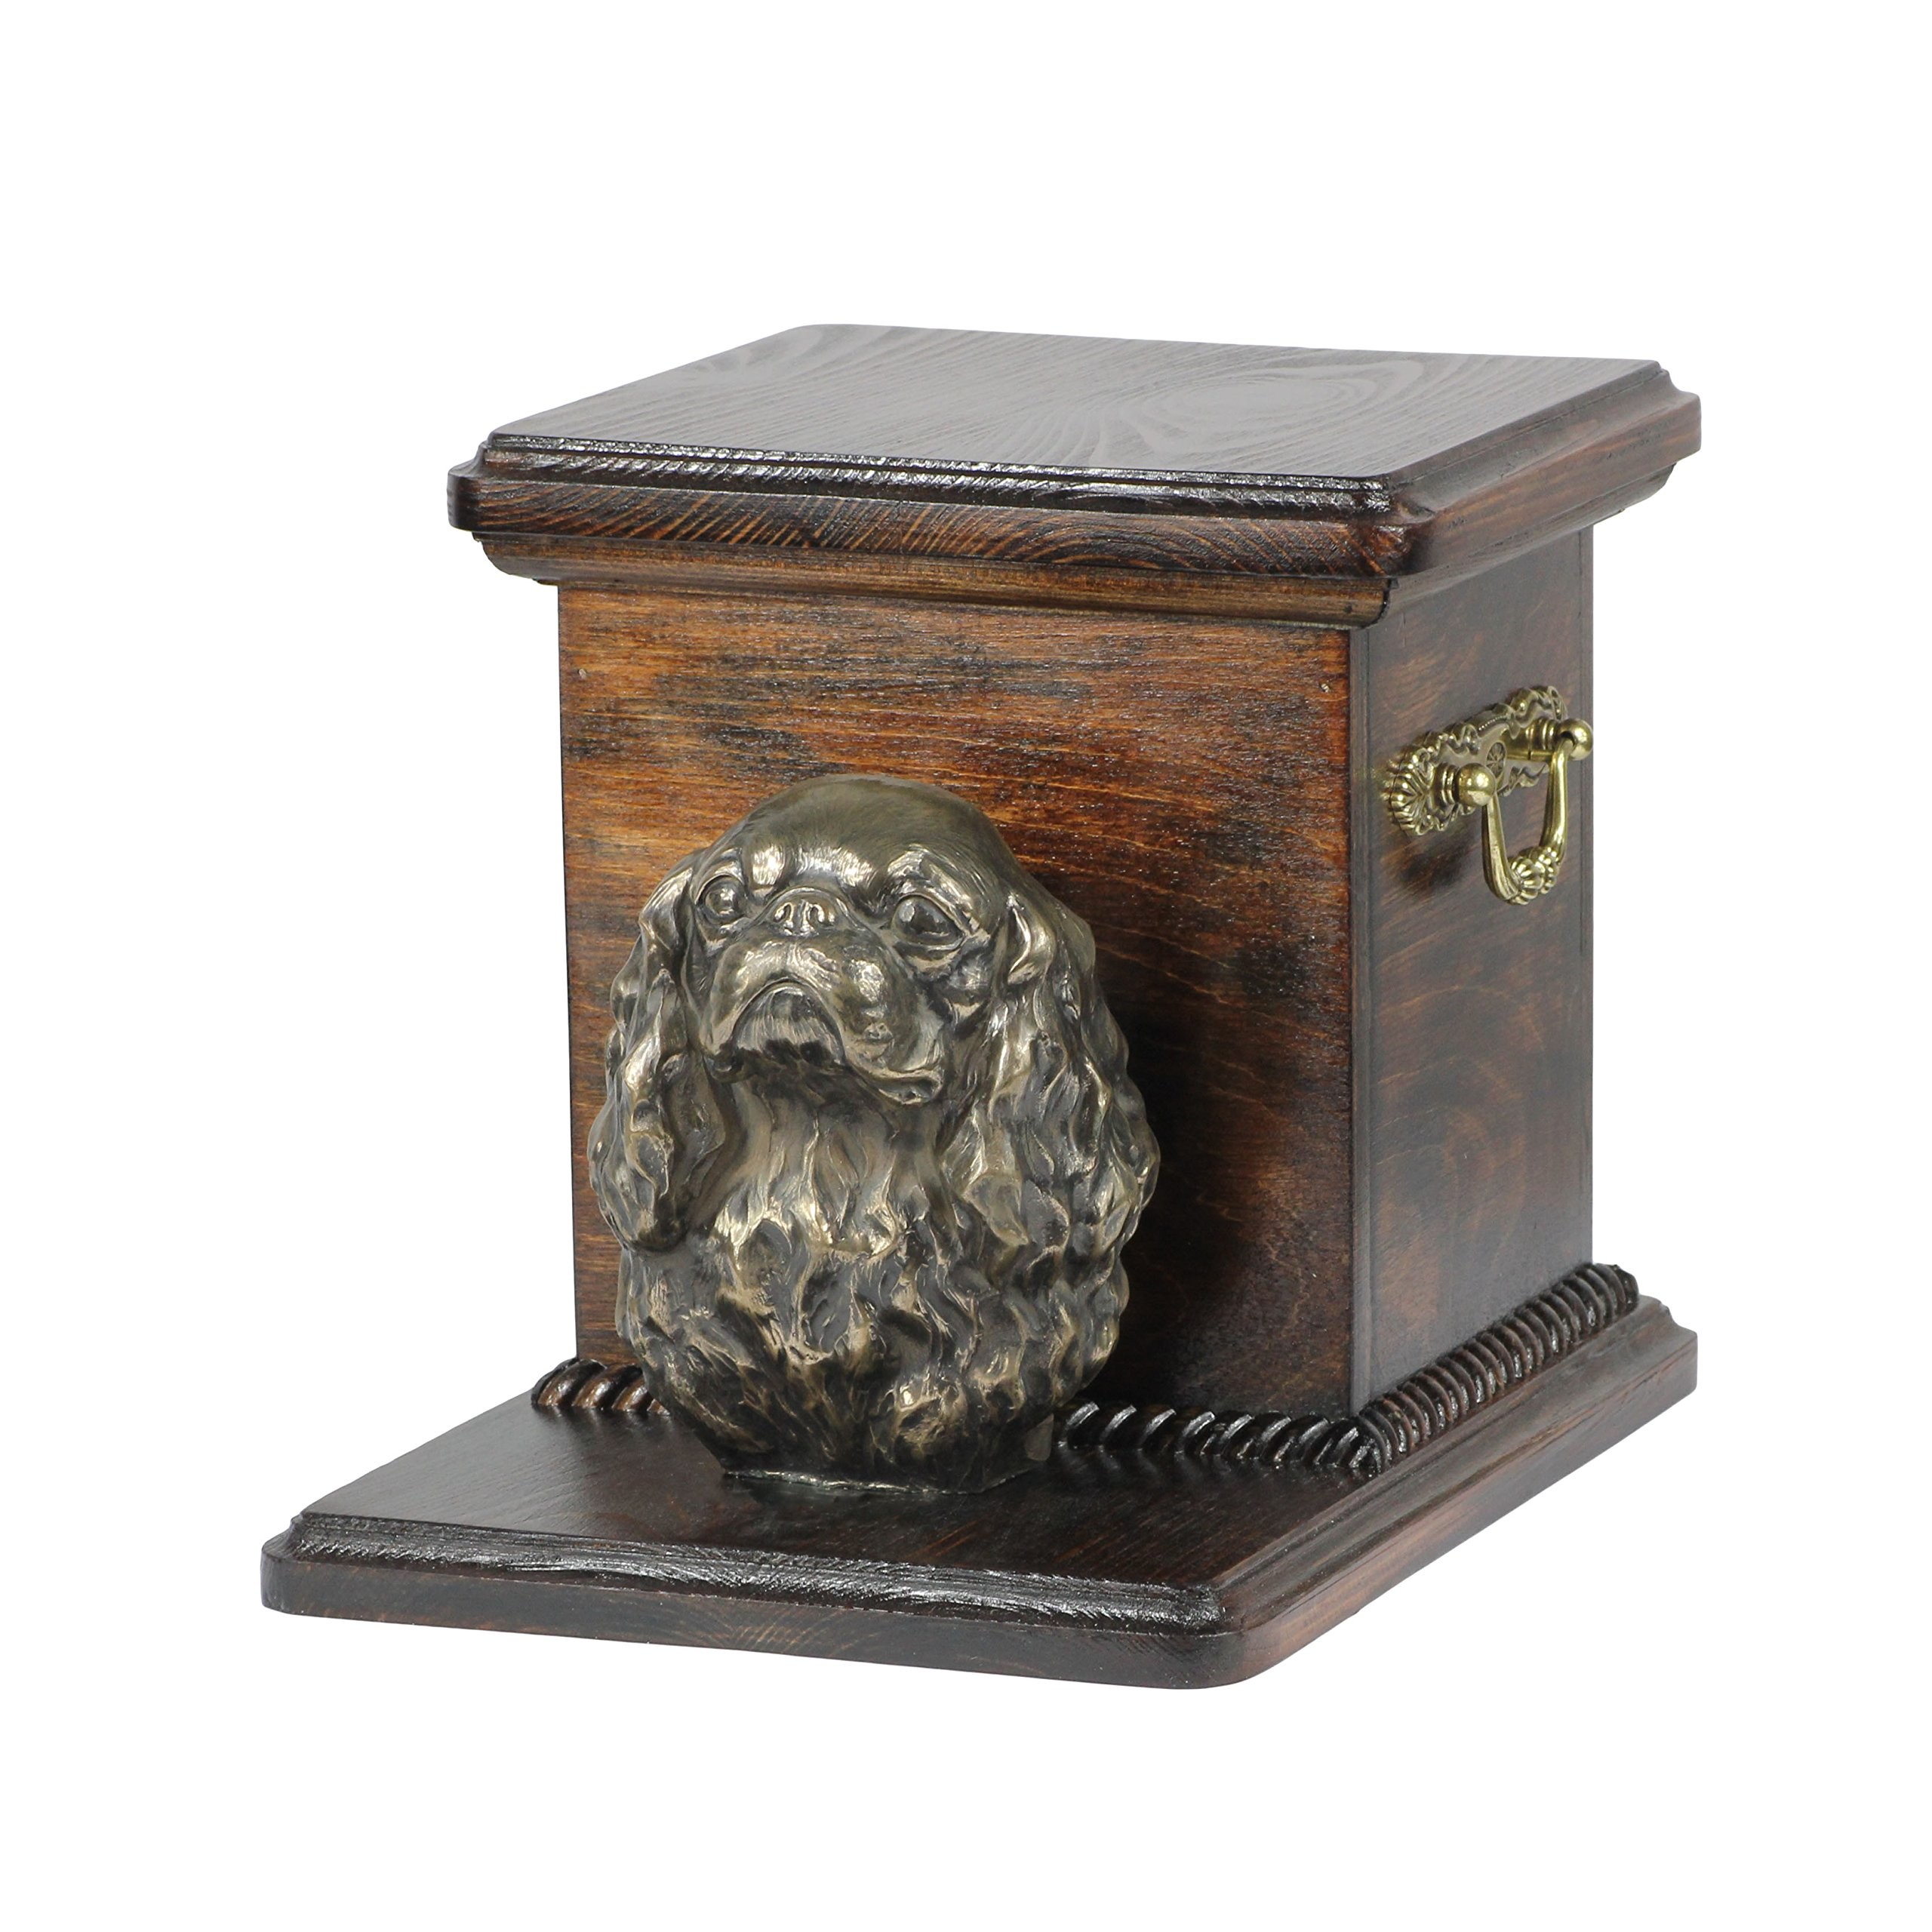 Cavalier King Charles Spaniel, memorial, urn for dog's ashes, with dog statue, ArtDog